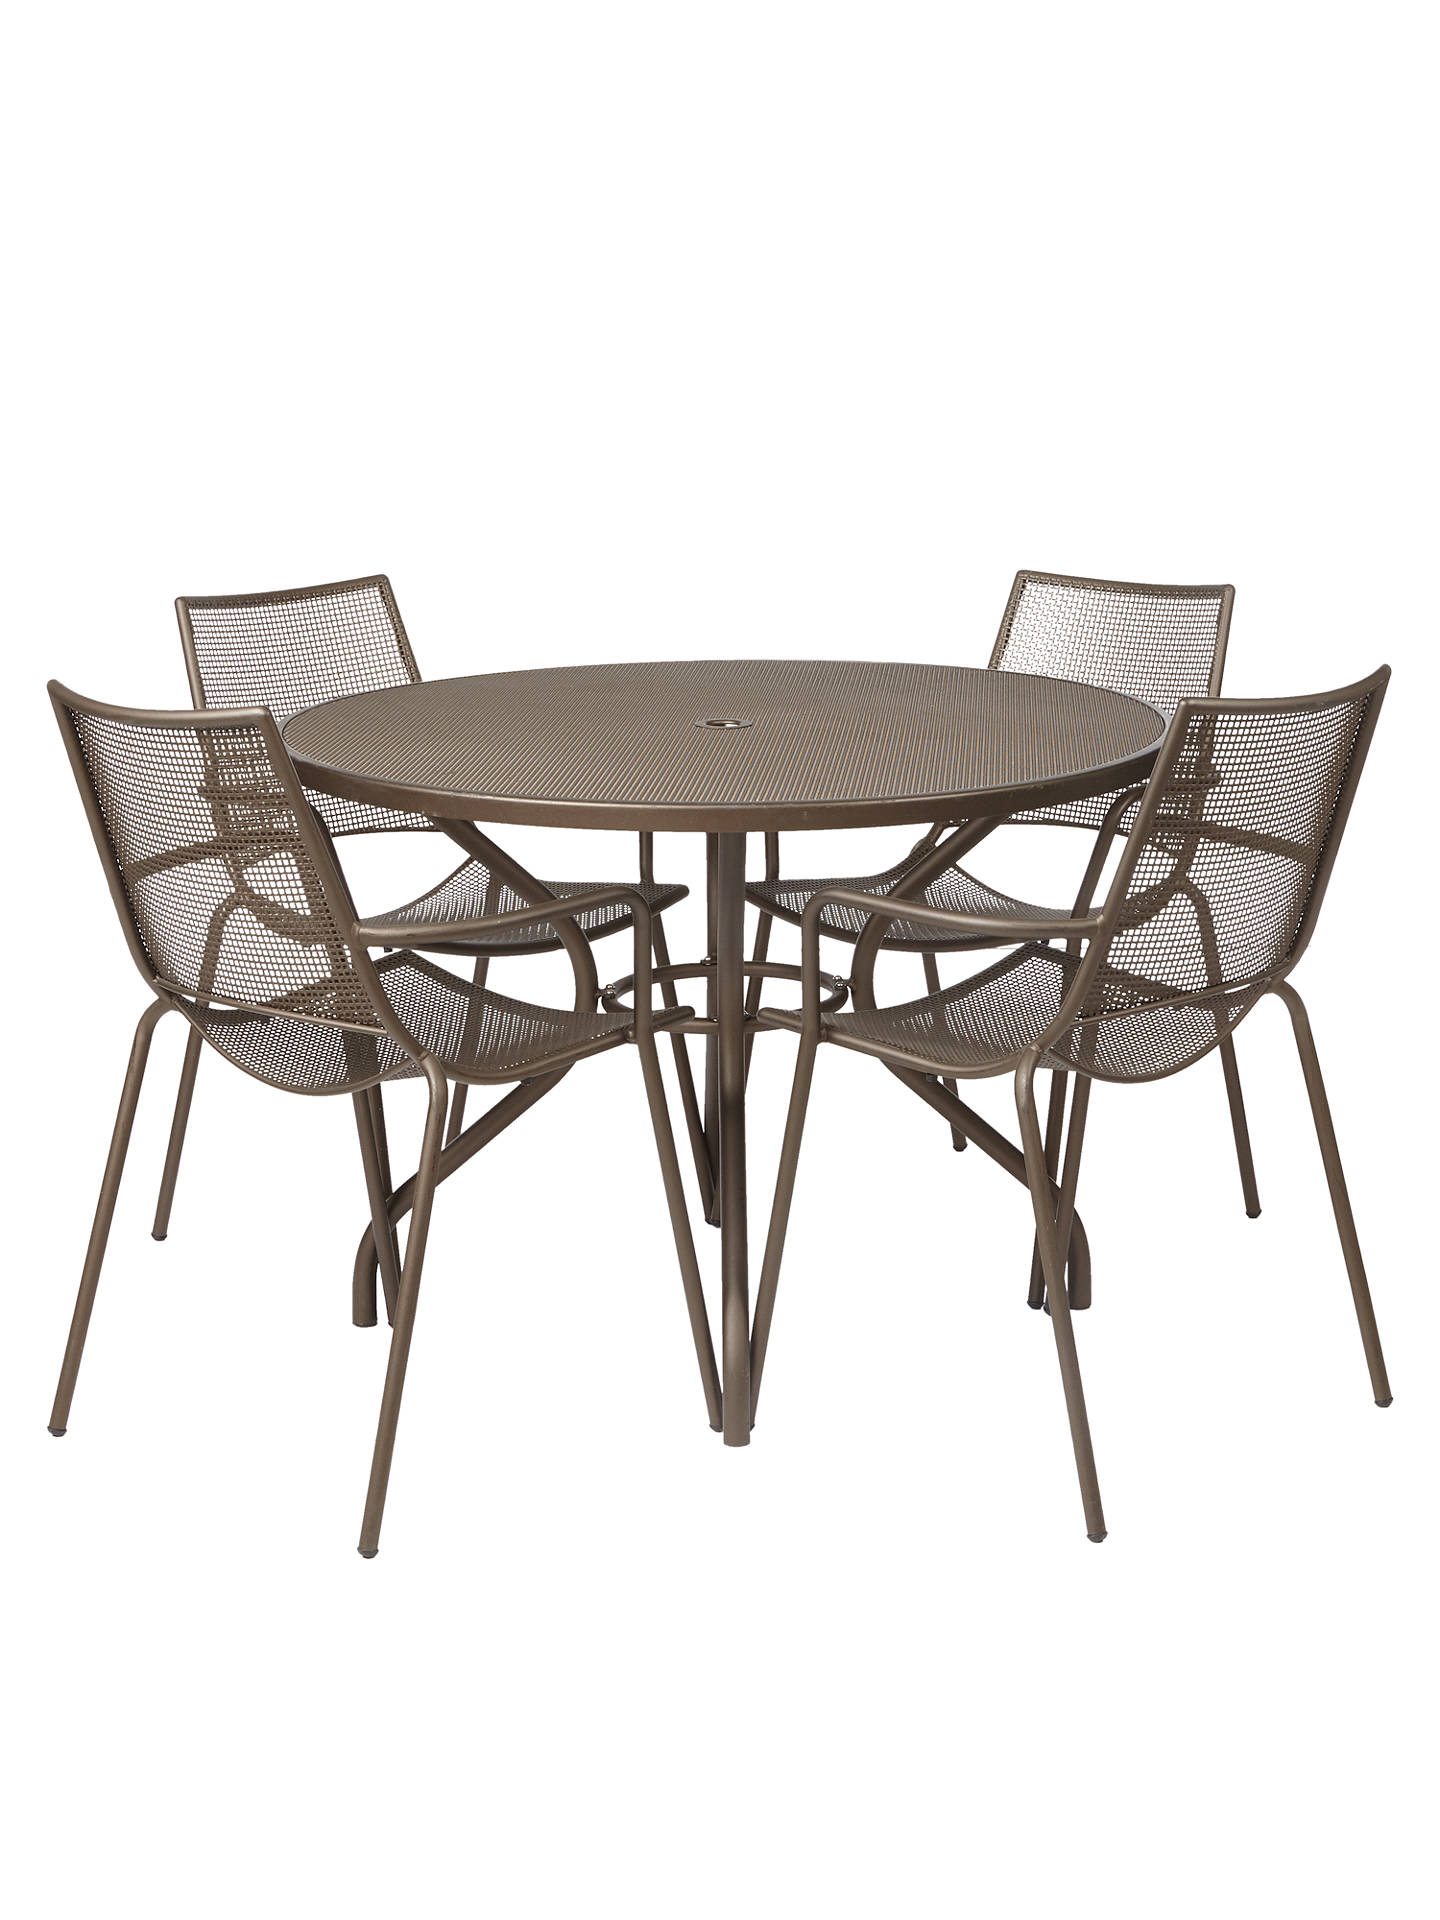 Pdp Outdoor Furniture Cover For Dining Set